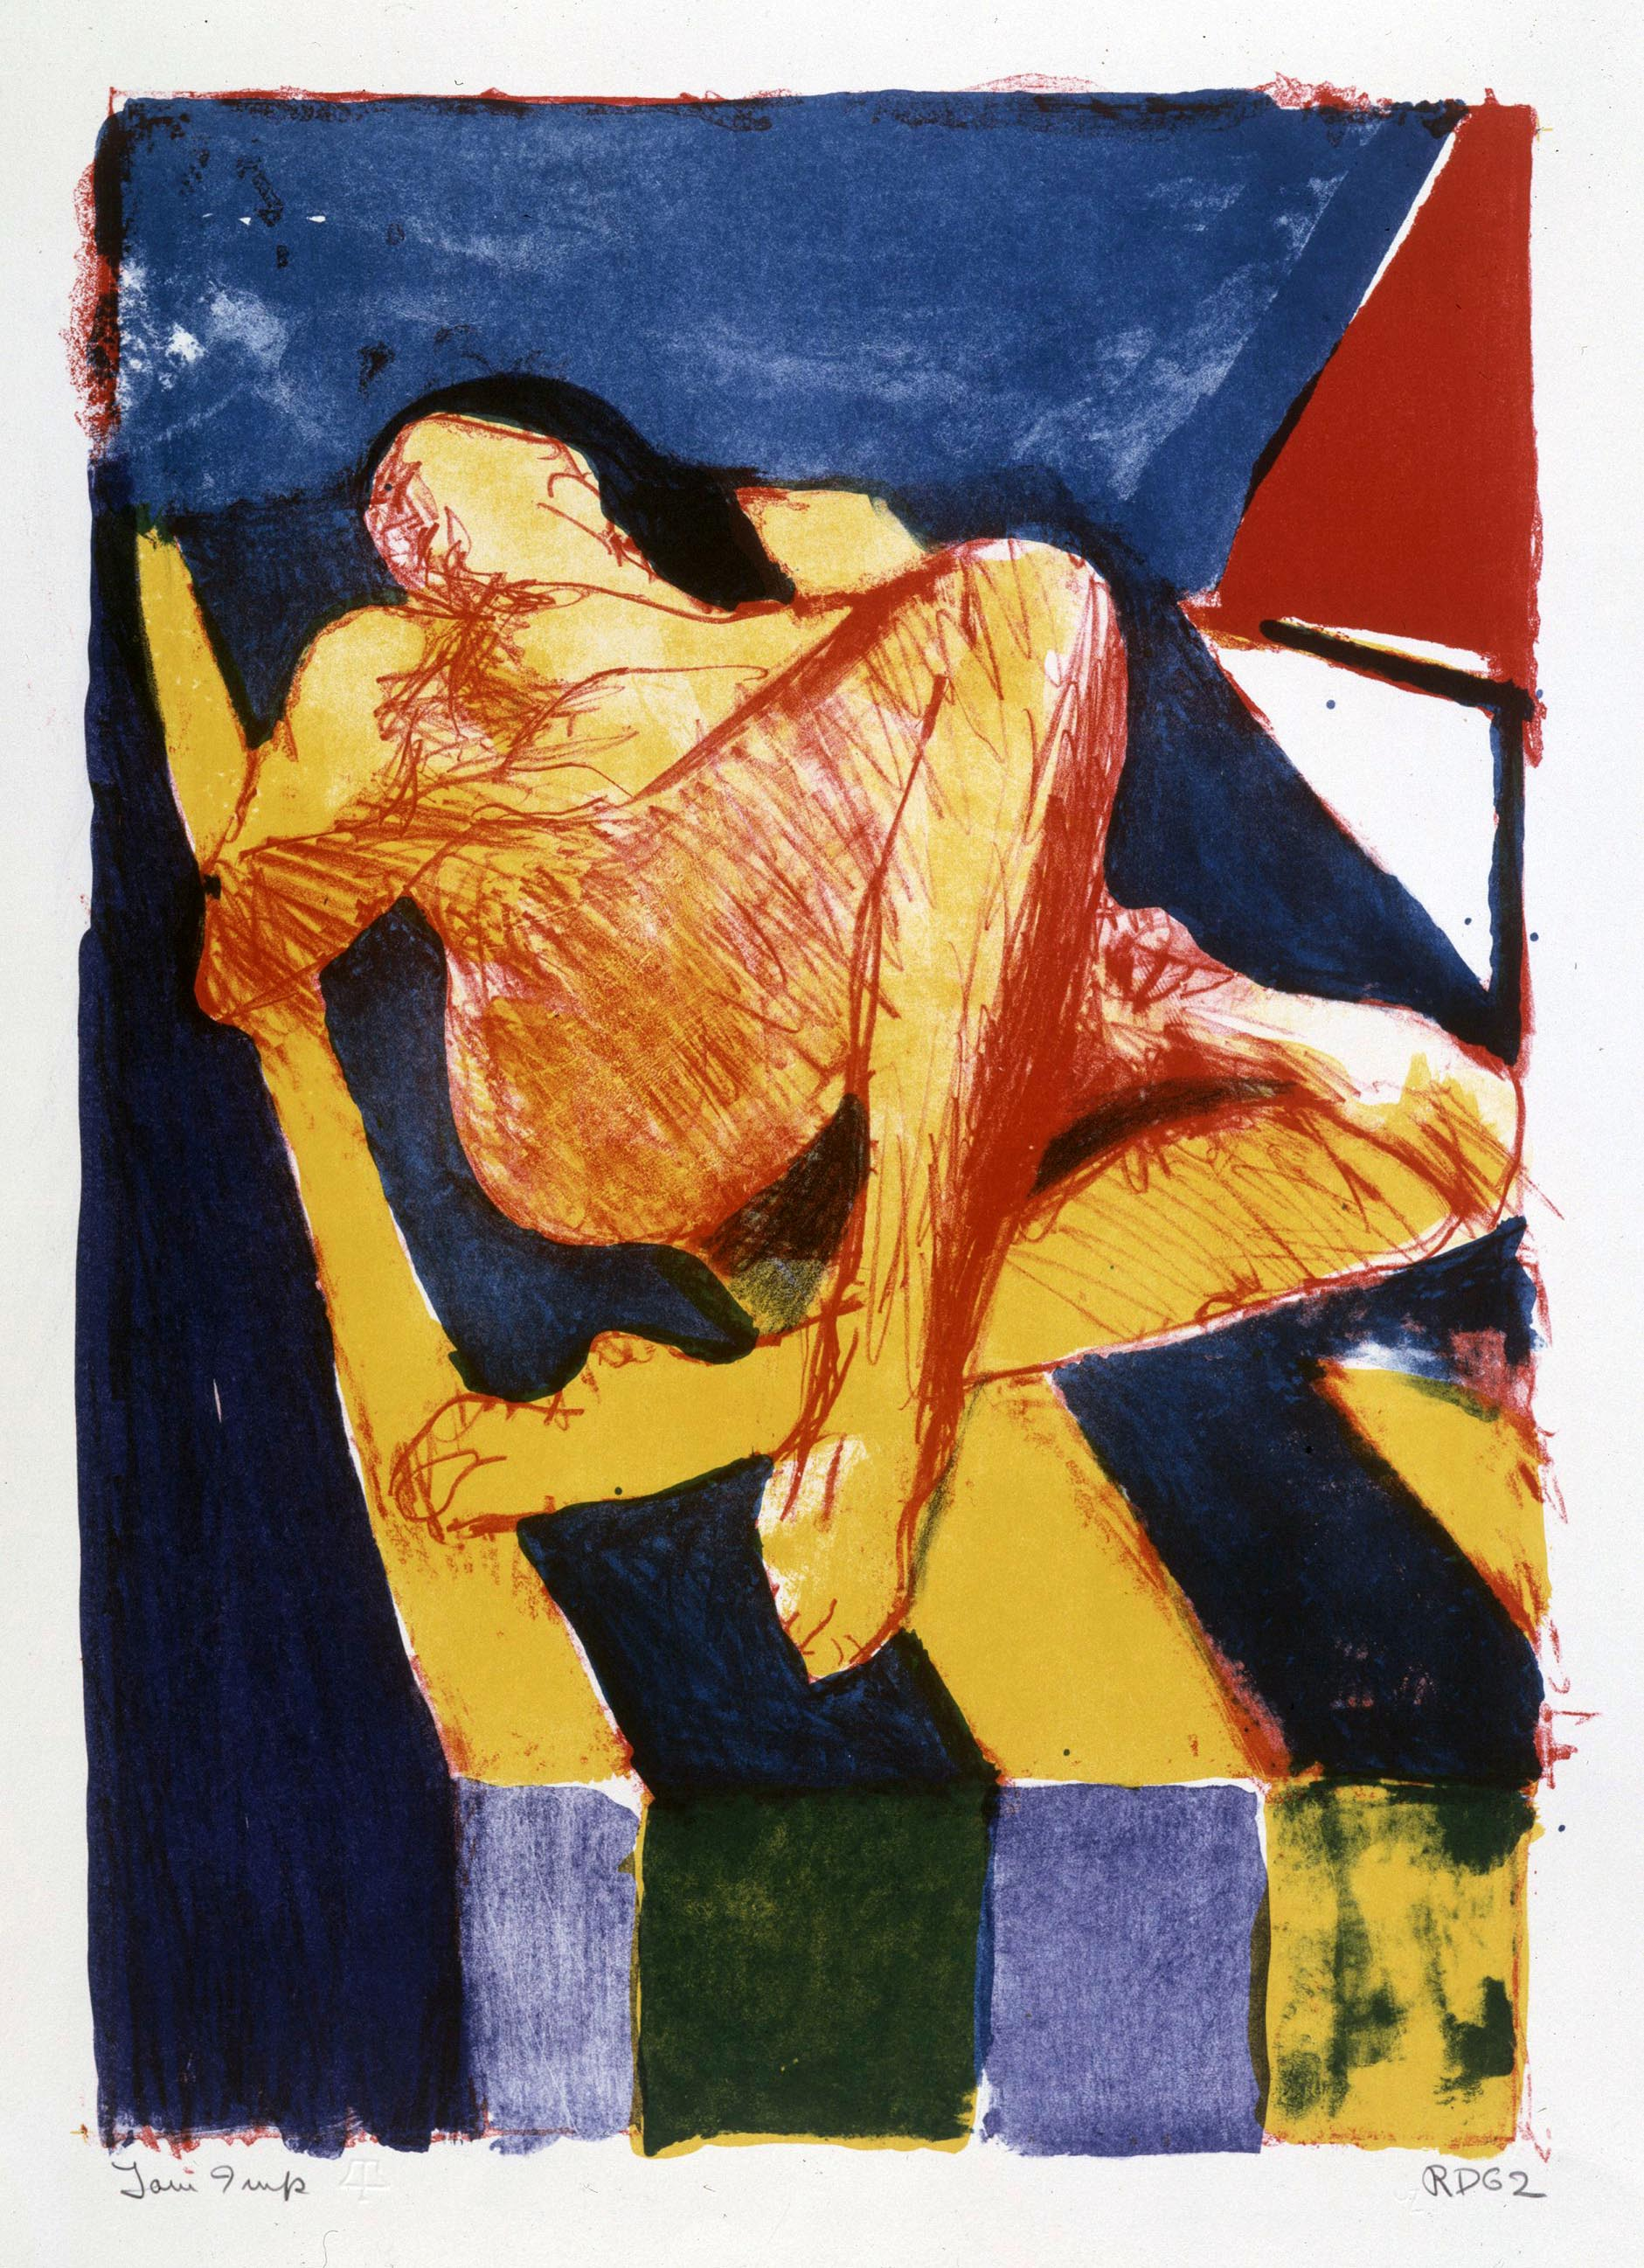 Richard Diebenkorn, Reclining Figure II, April 25-May 8, 1962